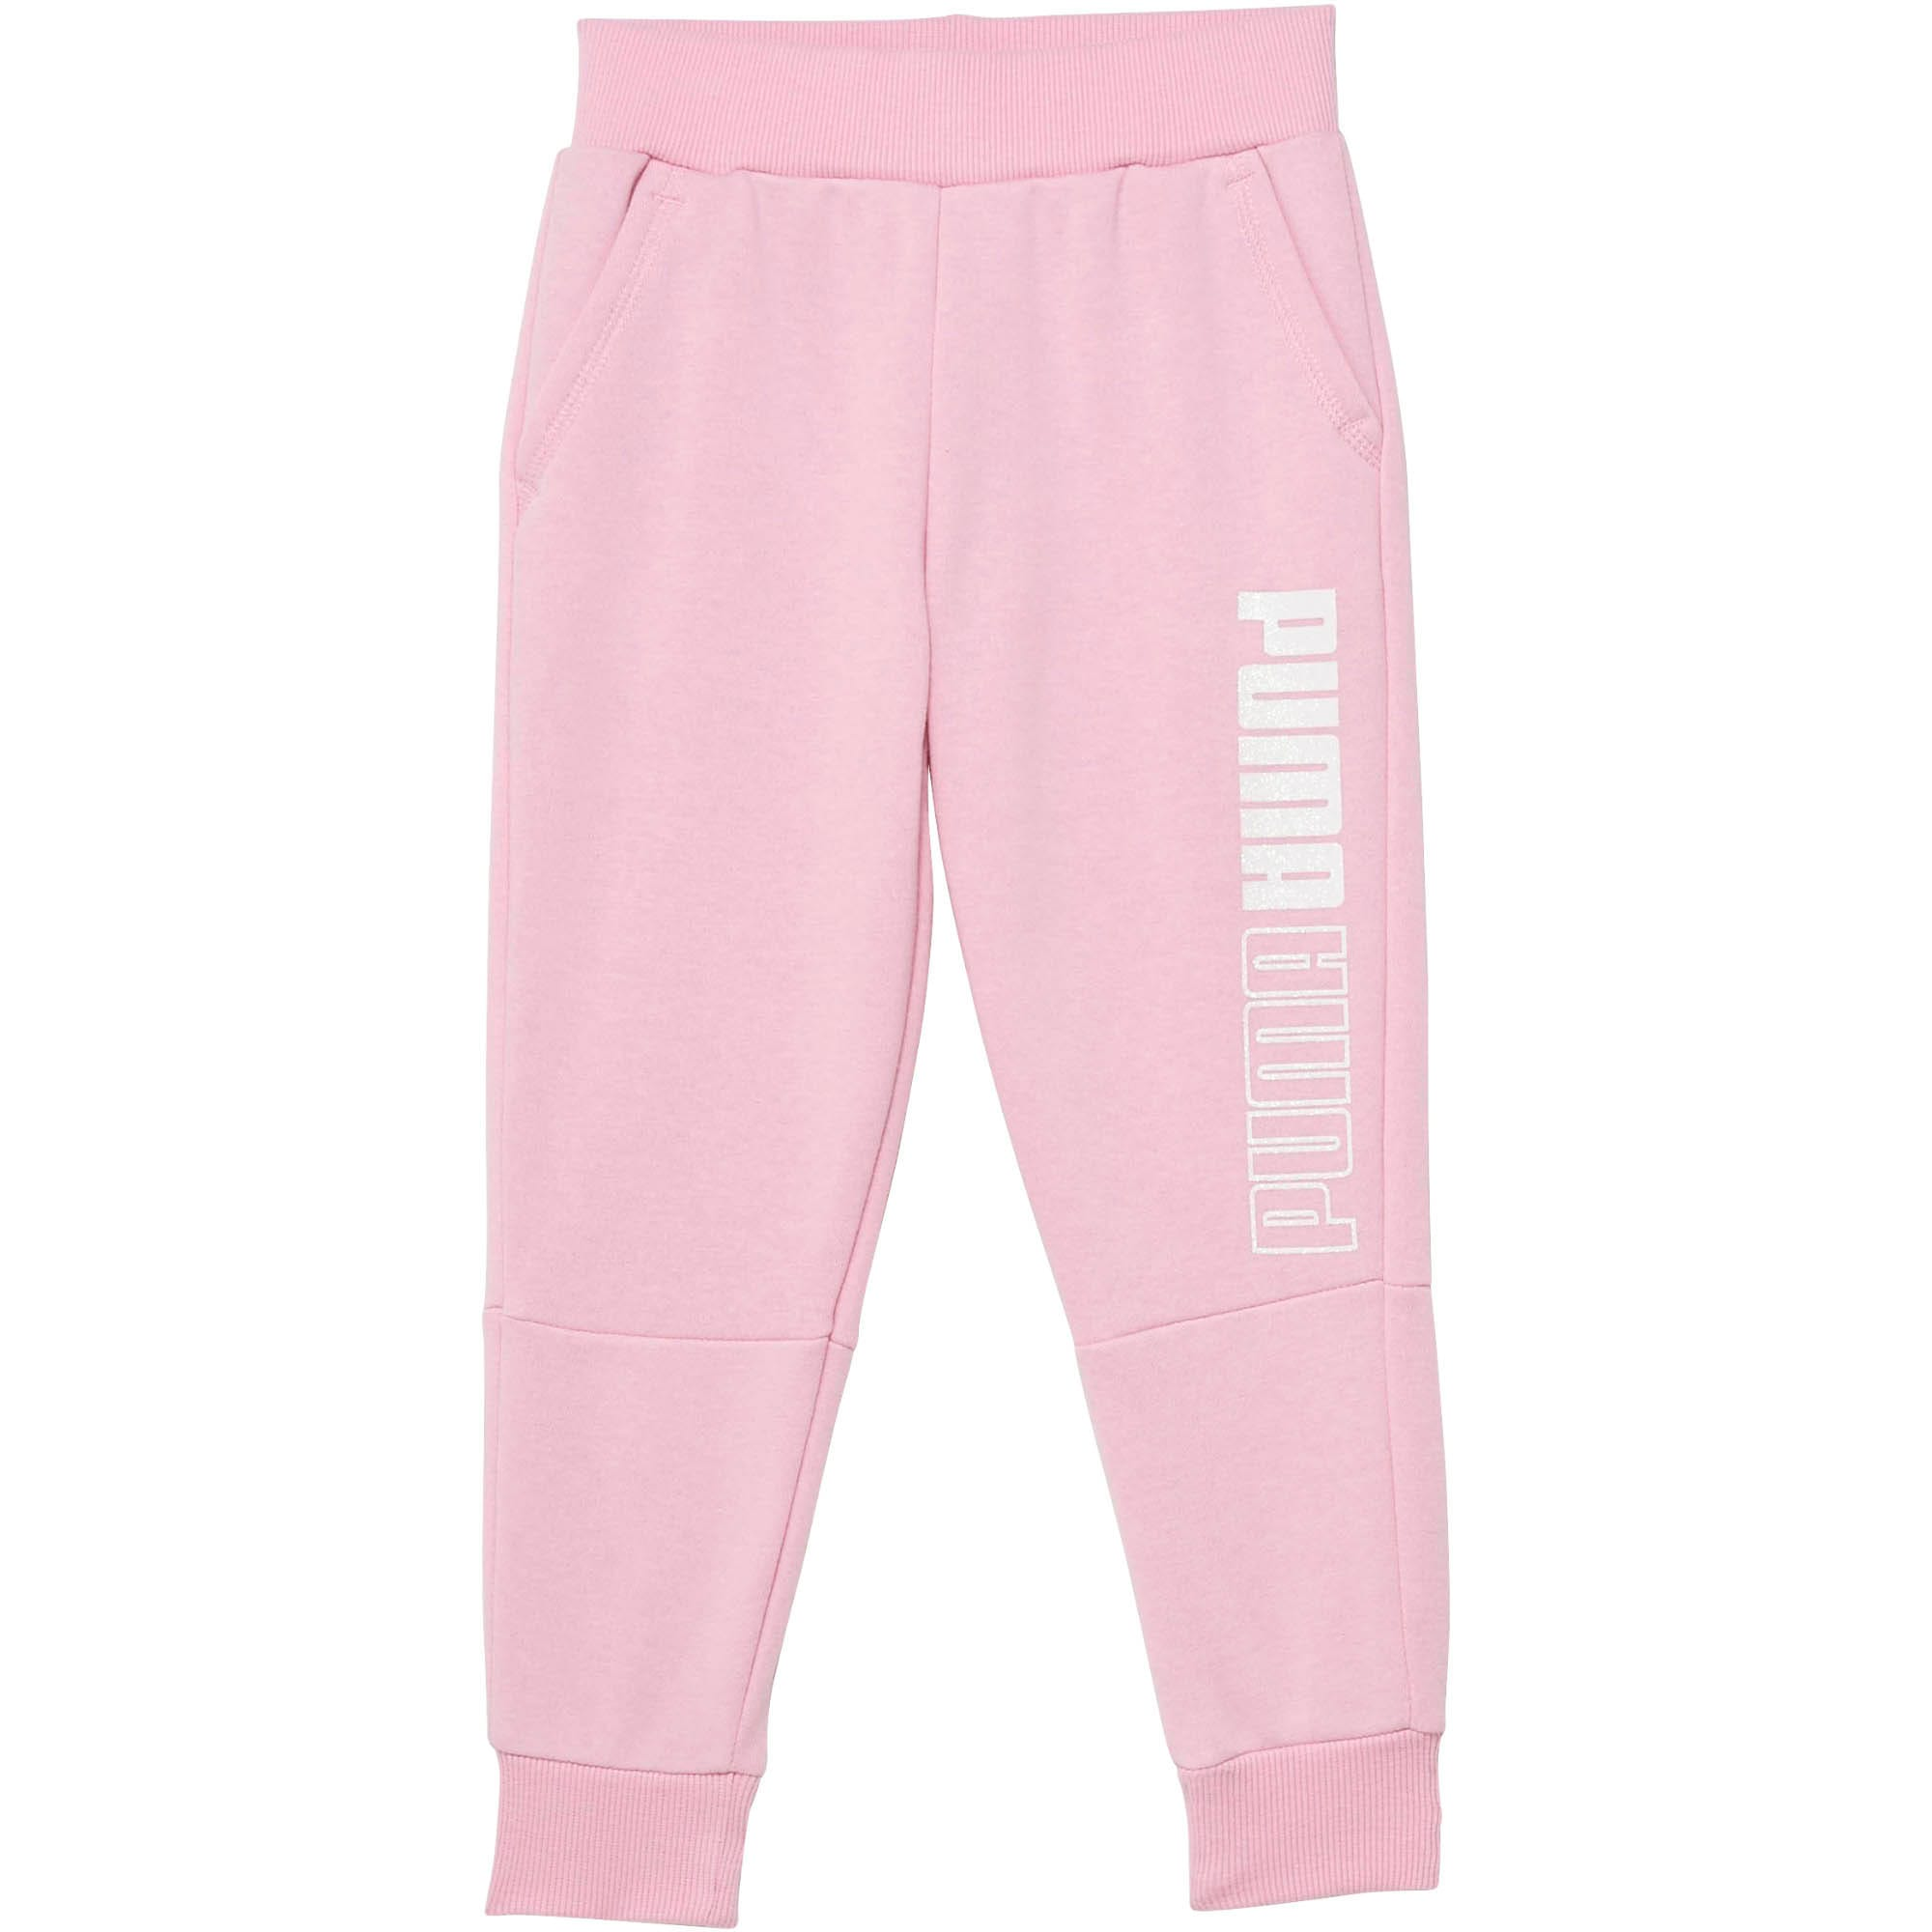 Thumbnail 1 of Little Kids' Fleece Joggers, PALE PINK, medium